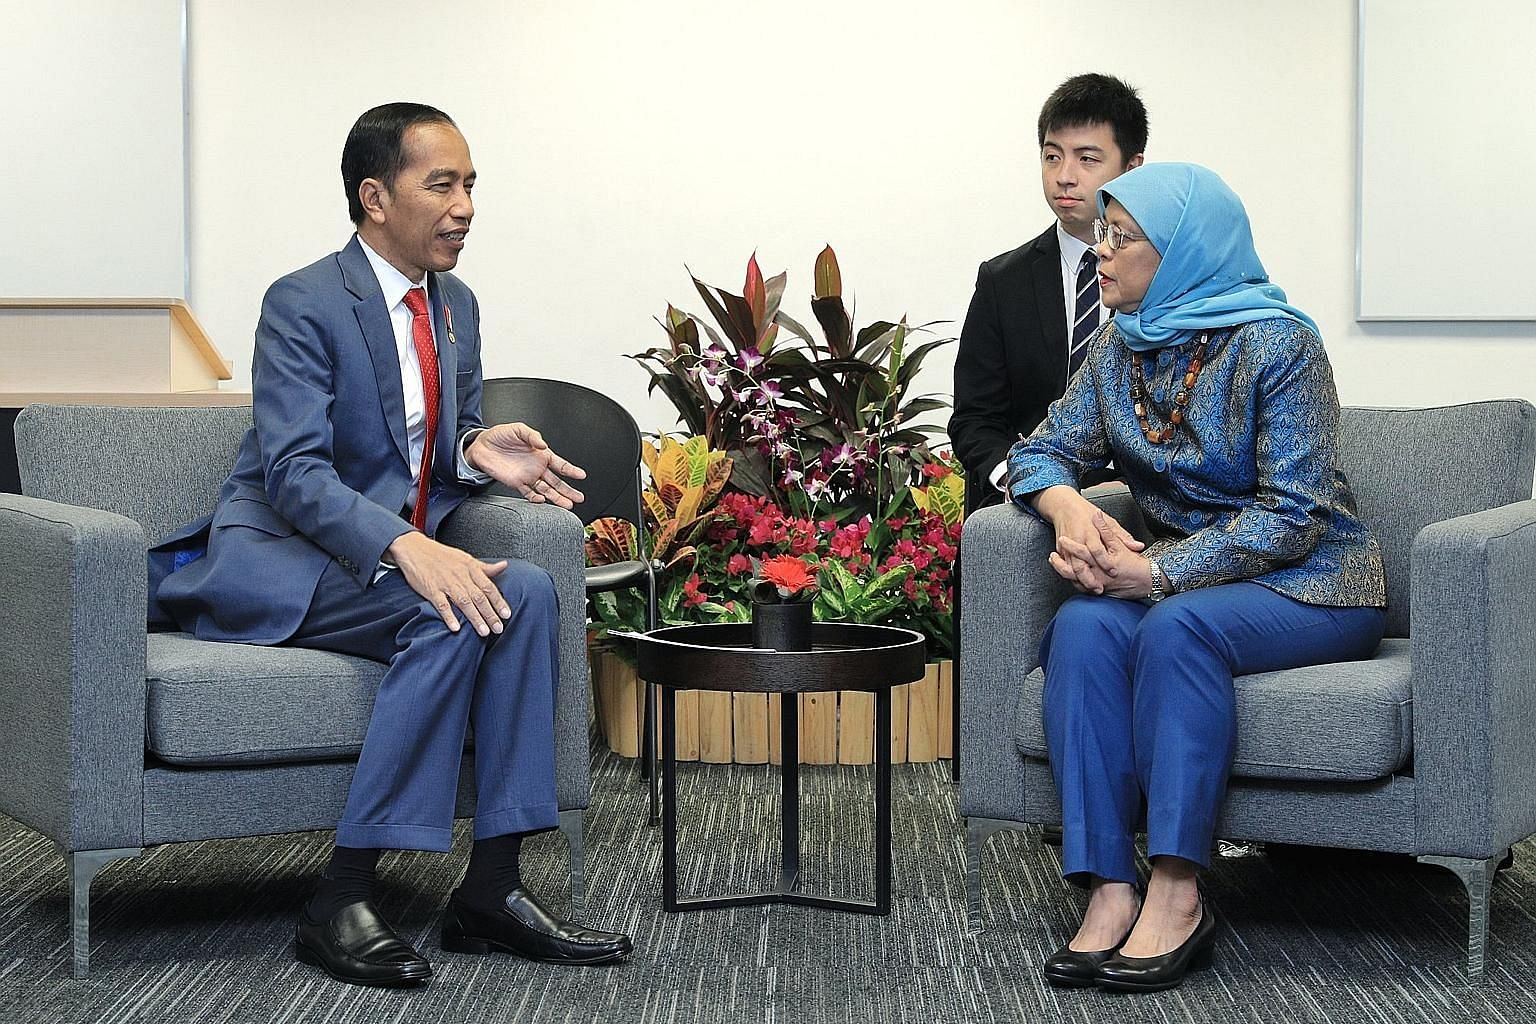 President Halimah Yacob meeting her Indonesian counterpart Joko Widodo at the Singapore University of Social Sciences yesterday. In a Facebook post, Madam Halimah said she congratulated Mr Joko on his son's graduation and entrepreneurship award, and